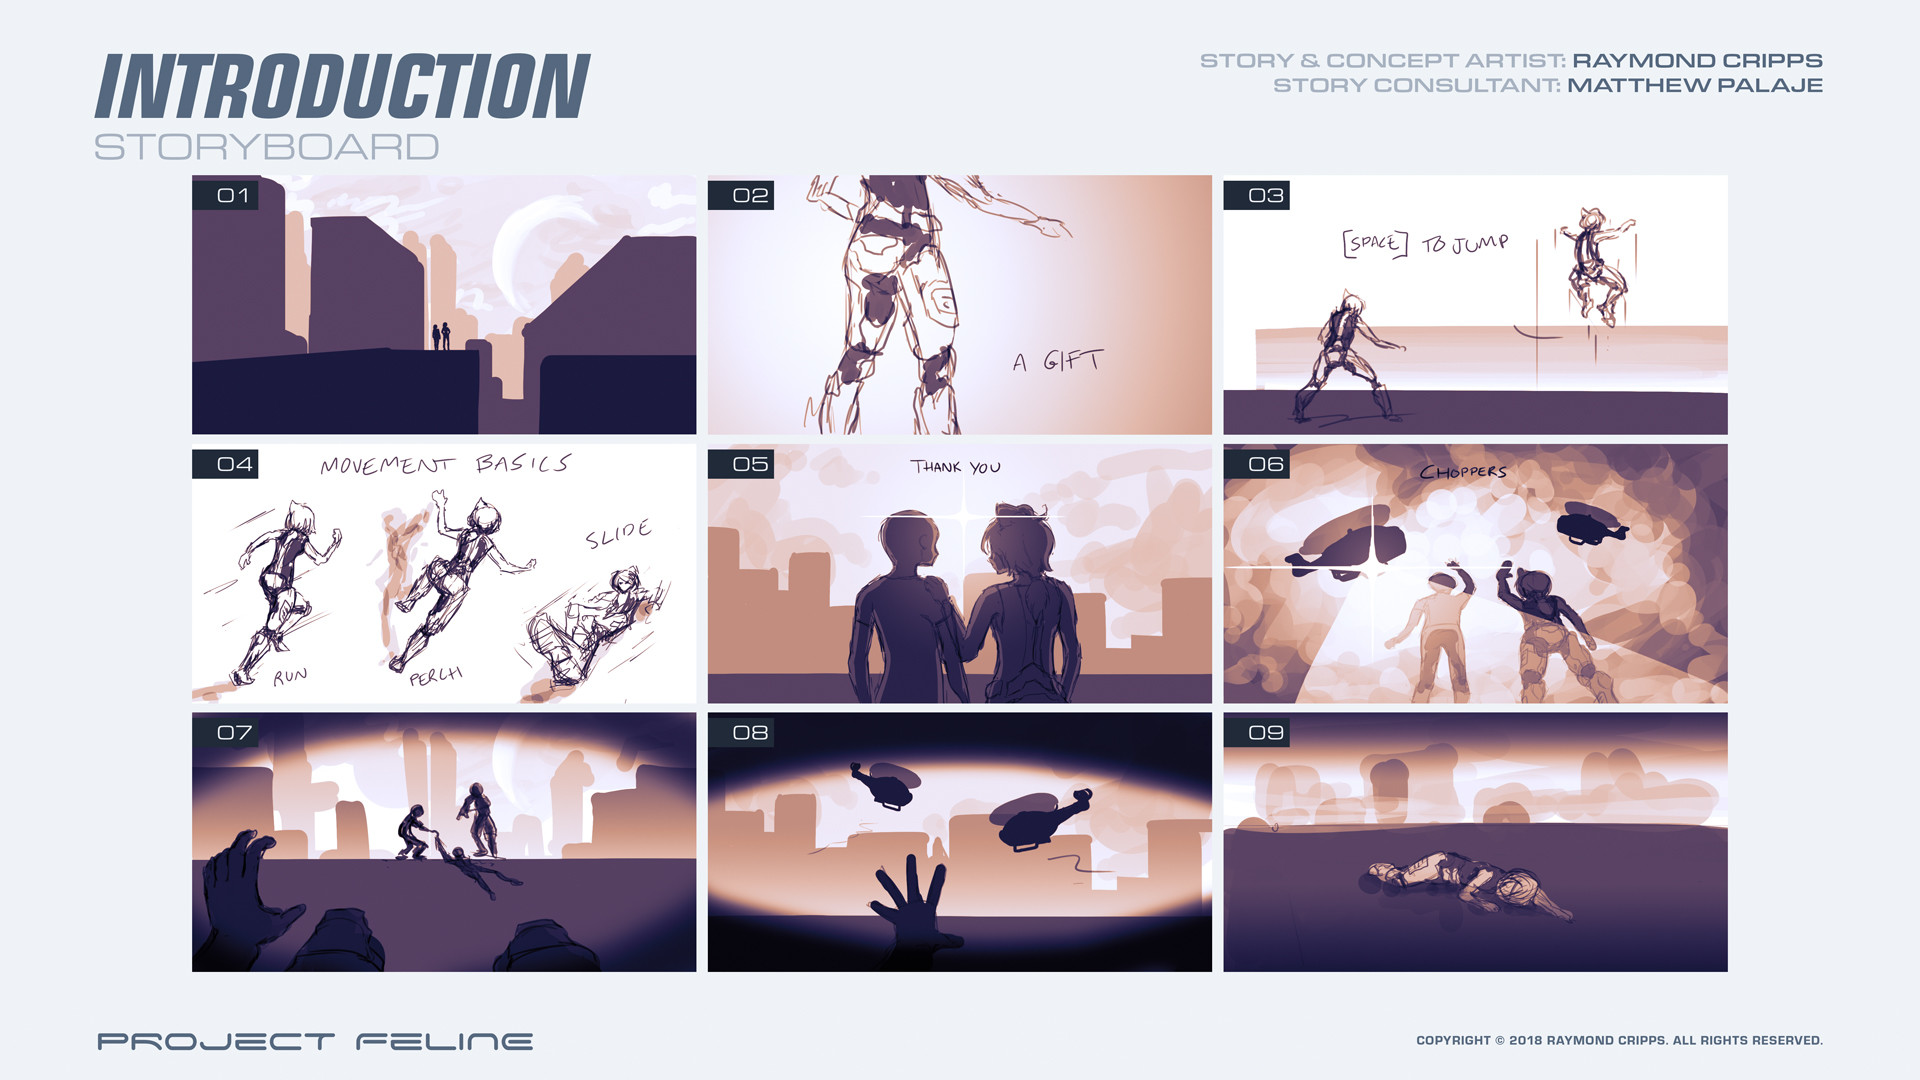 Storyboard for the game's introduction.